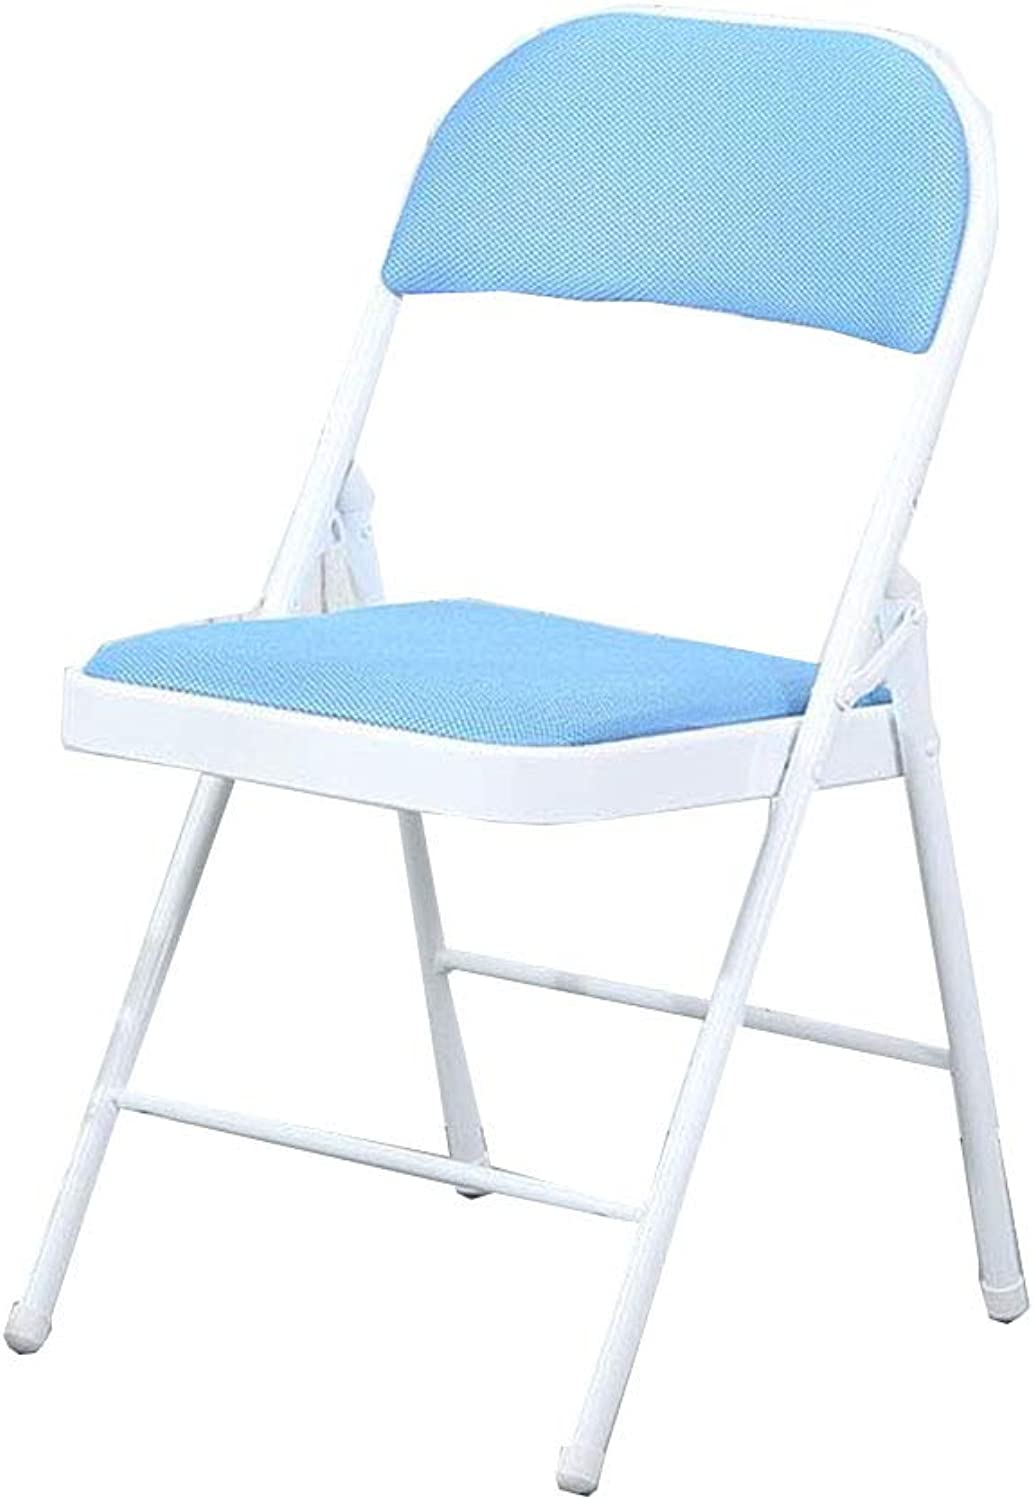 Household Folding Chair Meeting Training Dormitory Computer Simple Stool(47  45  88cm) (color   bluee)